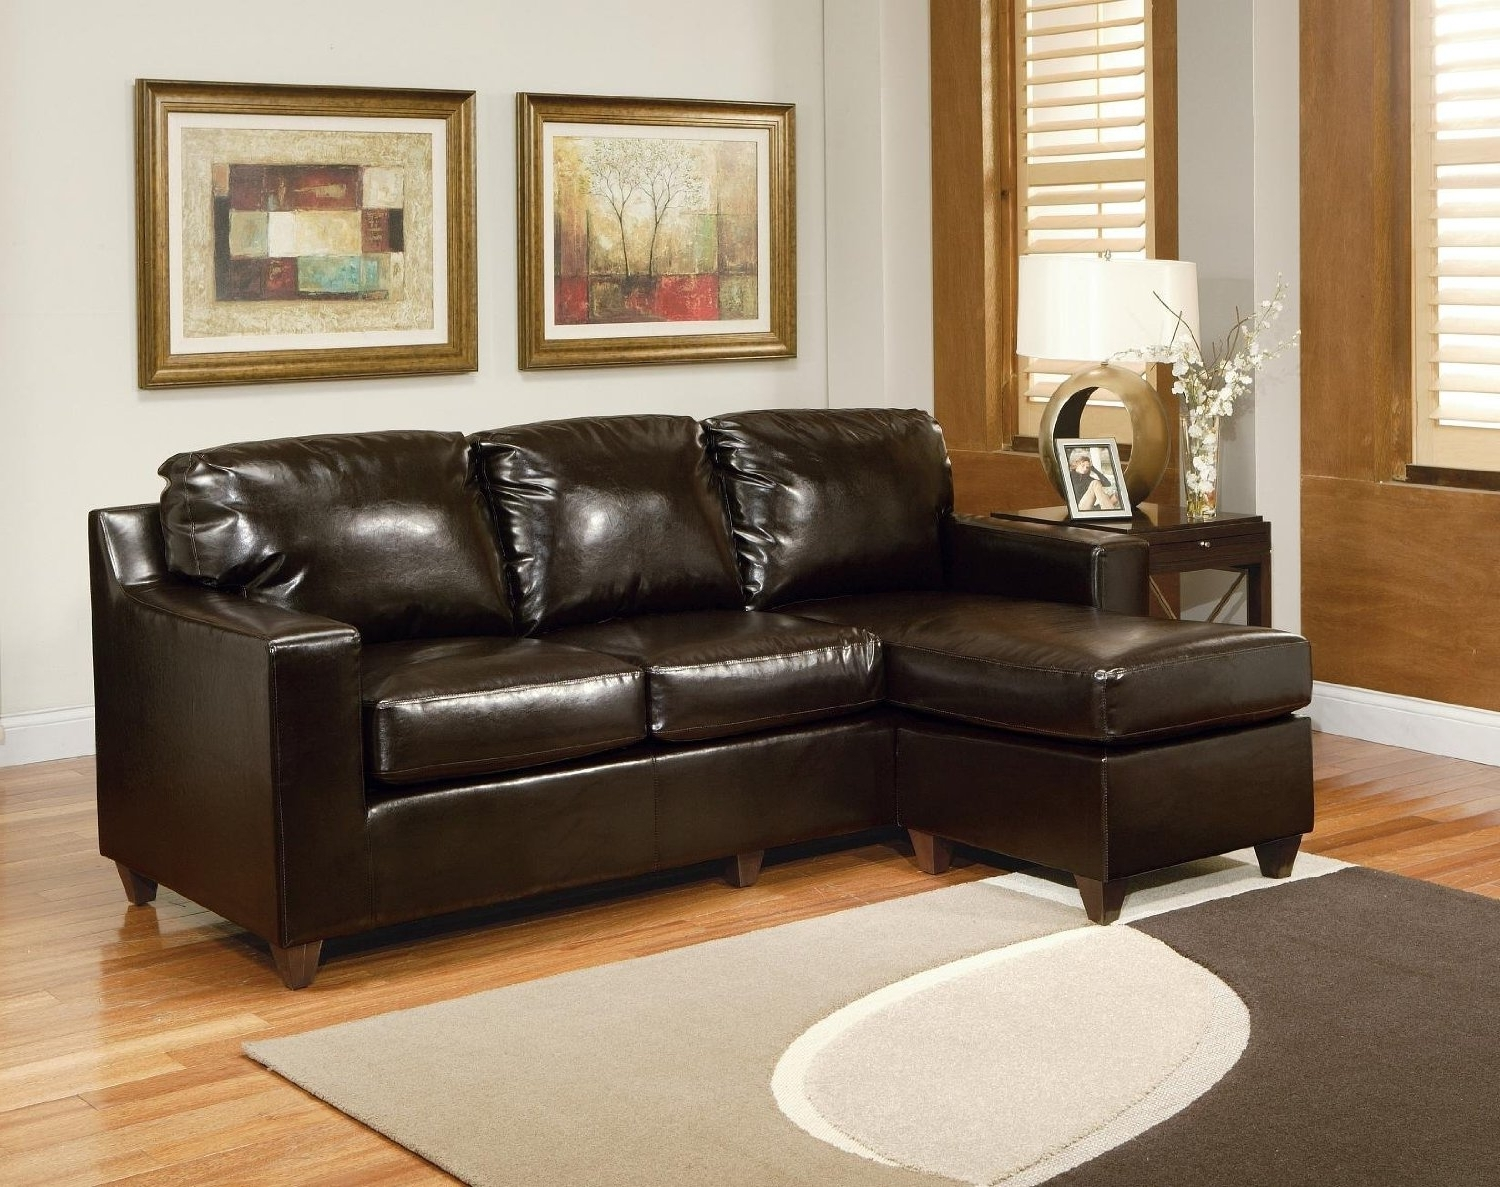 Preferred Small Leather Sectionals With Chaise Regarding Sectional Sleeper Sofa Queen Small Sectional Couch Apartment Size (View 15 of 15)